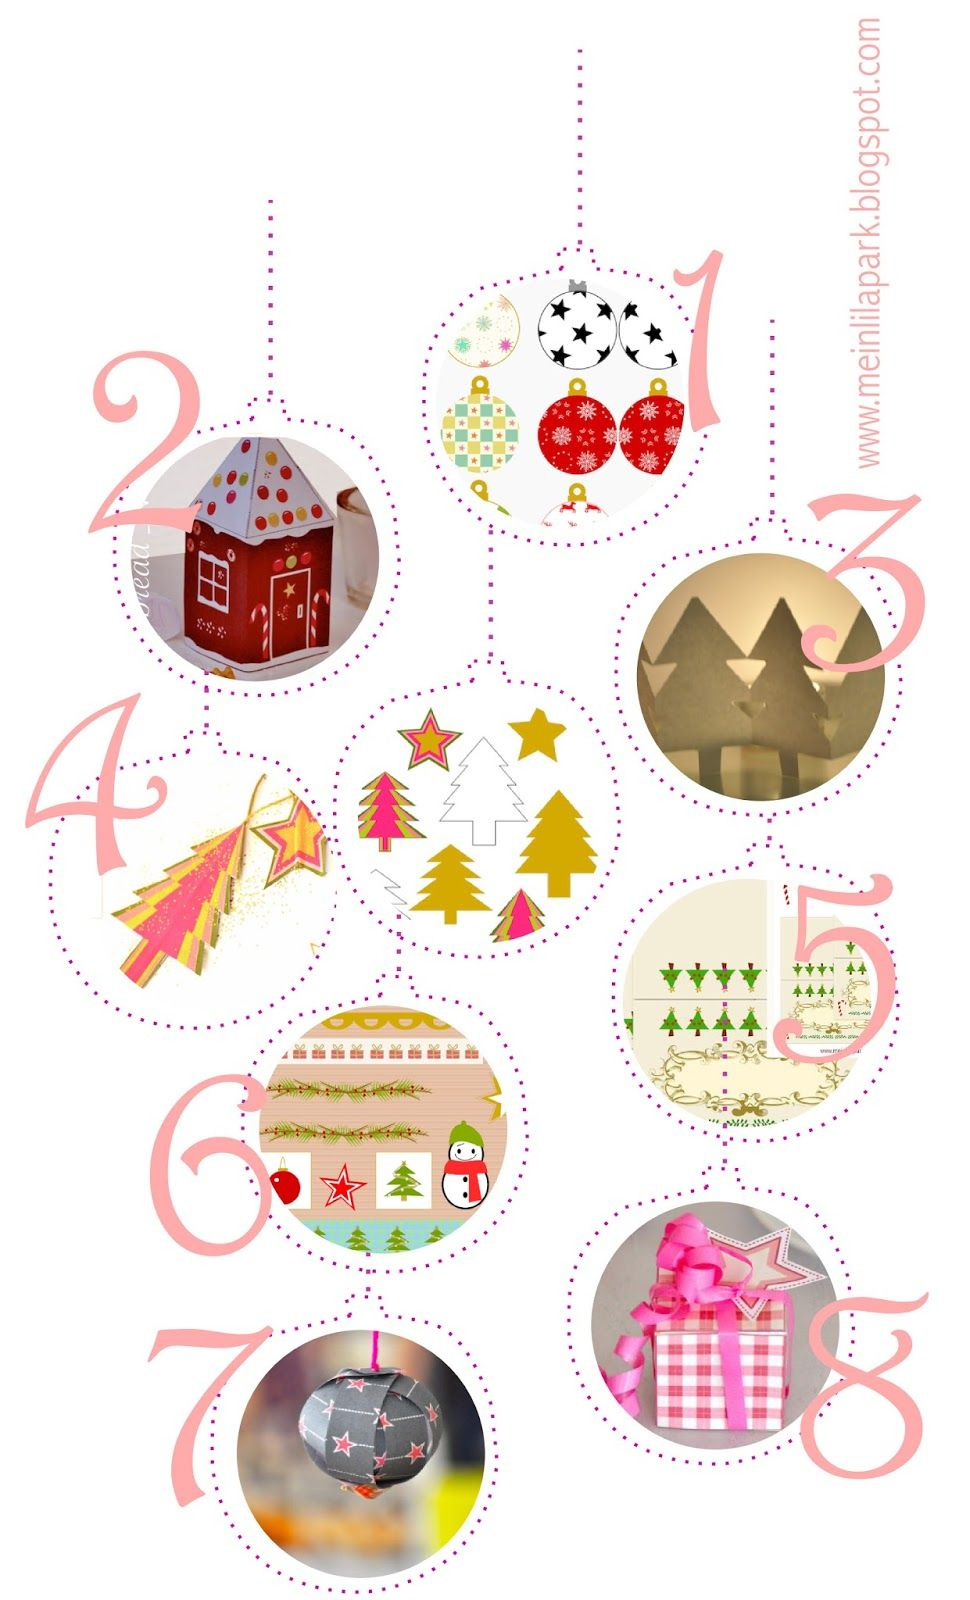 photograph relating to Christmas Printable Decorations named Totally free printable Xmas decorations - ausdruckbare